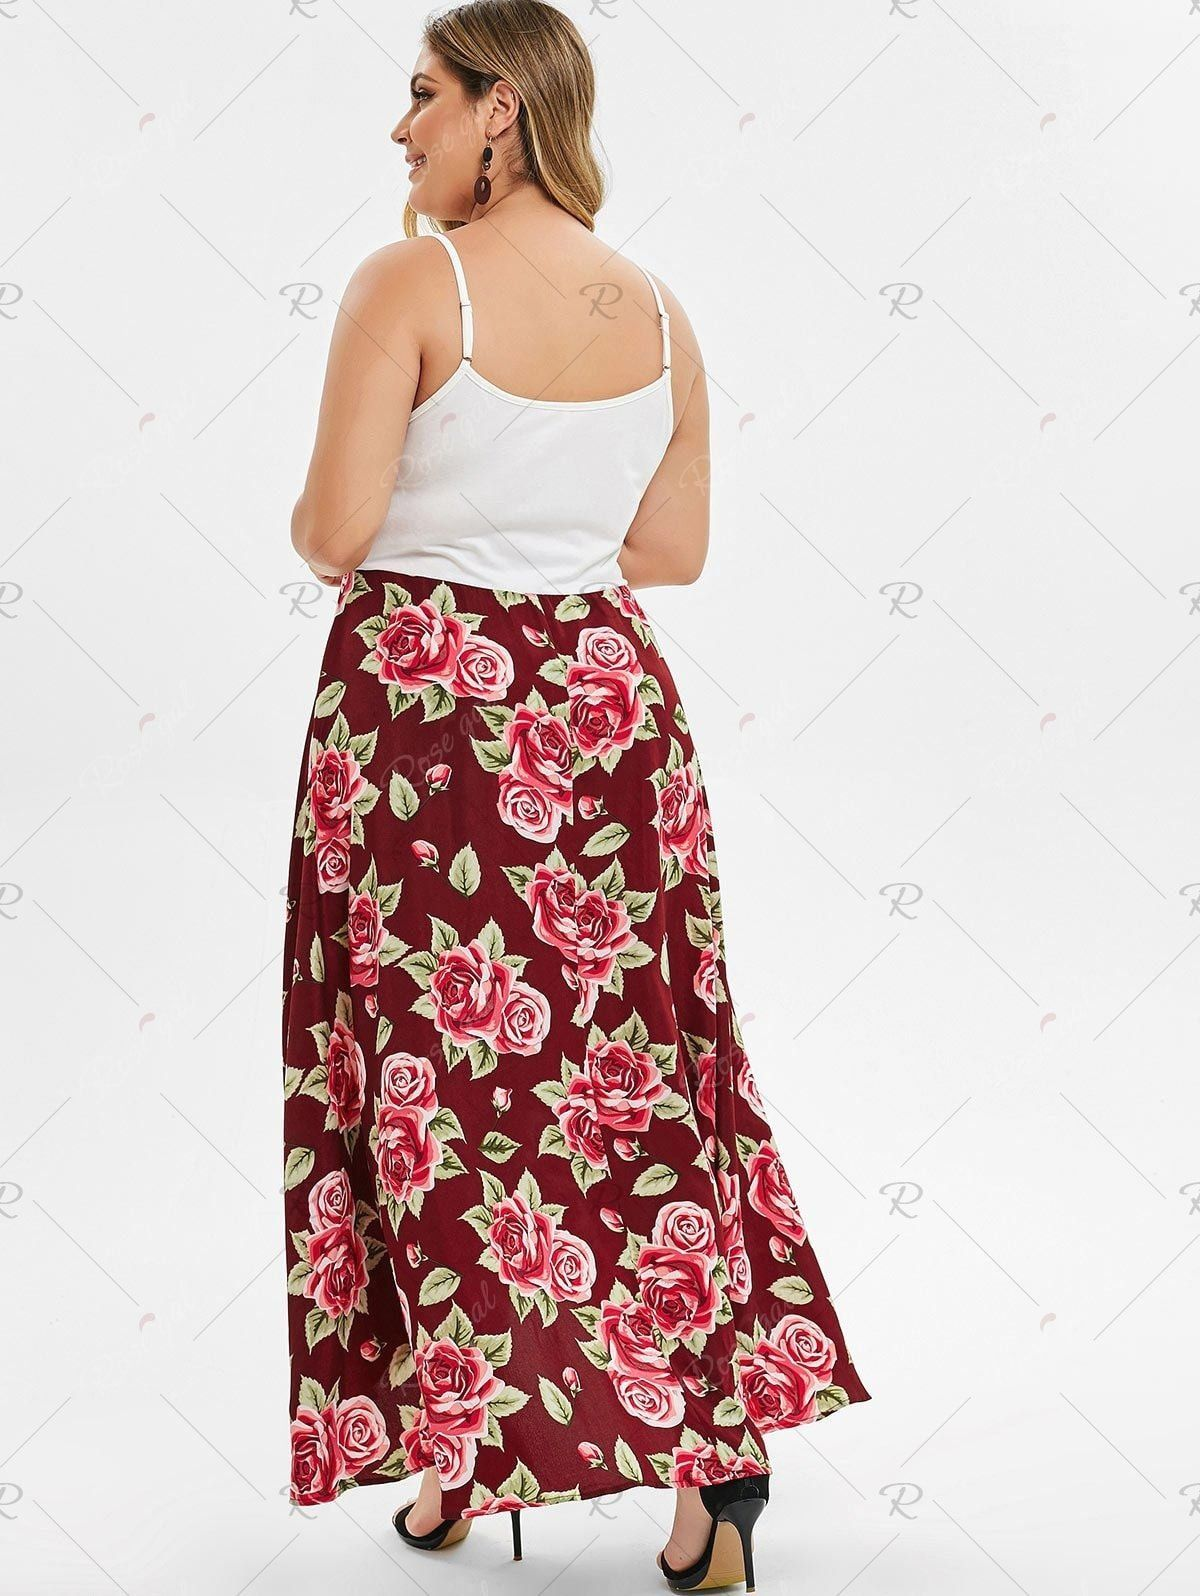 Plus Size Twist High Low Maxi Floral Dress 1000 in 2020